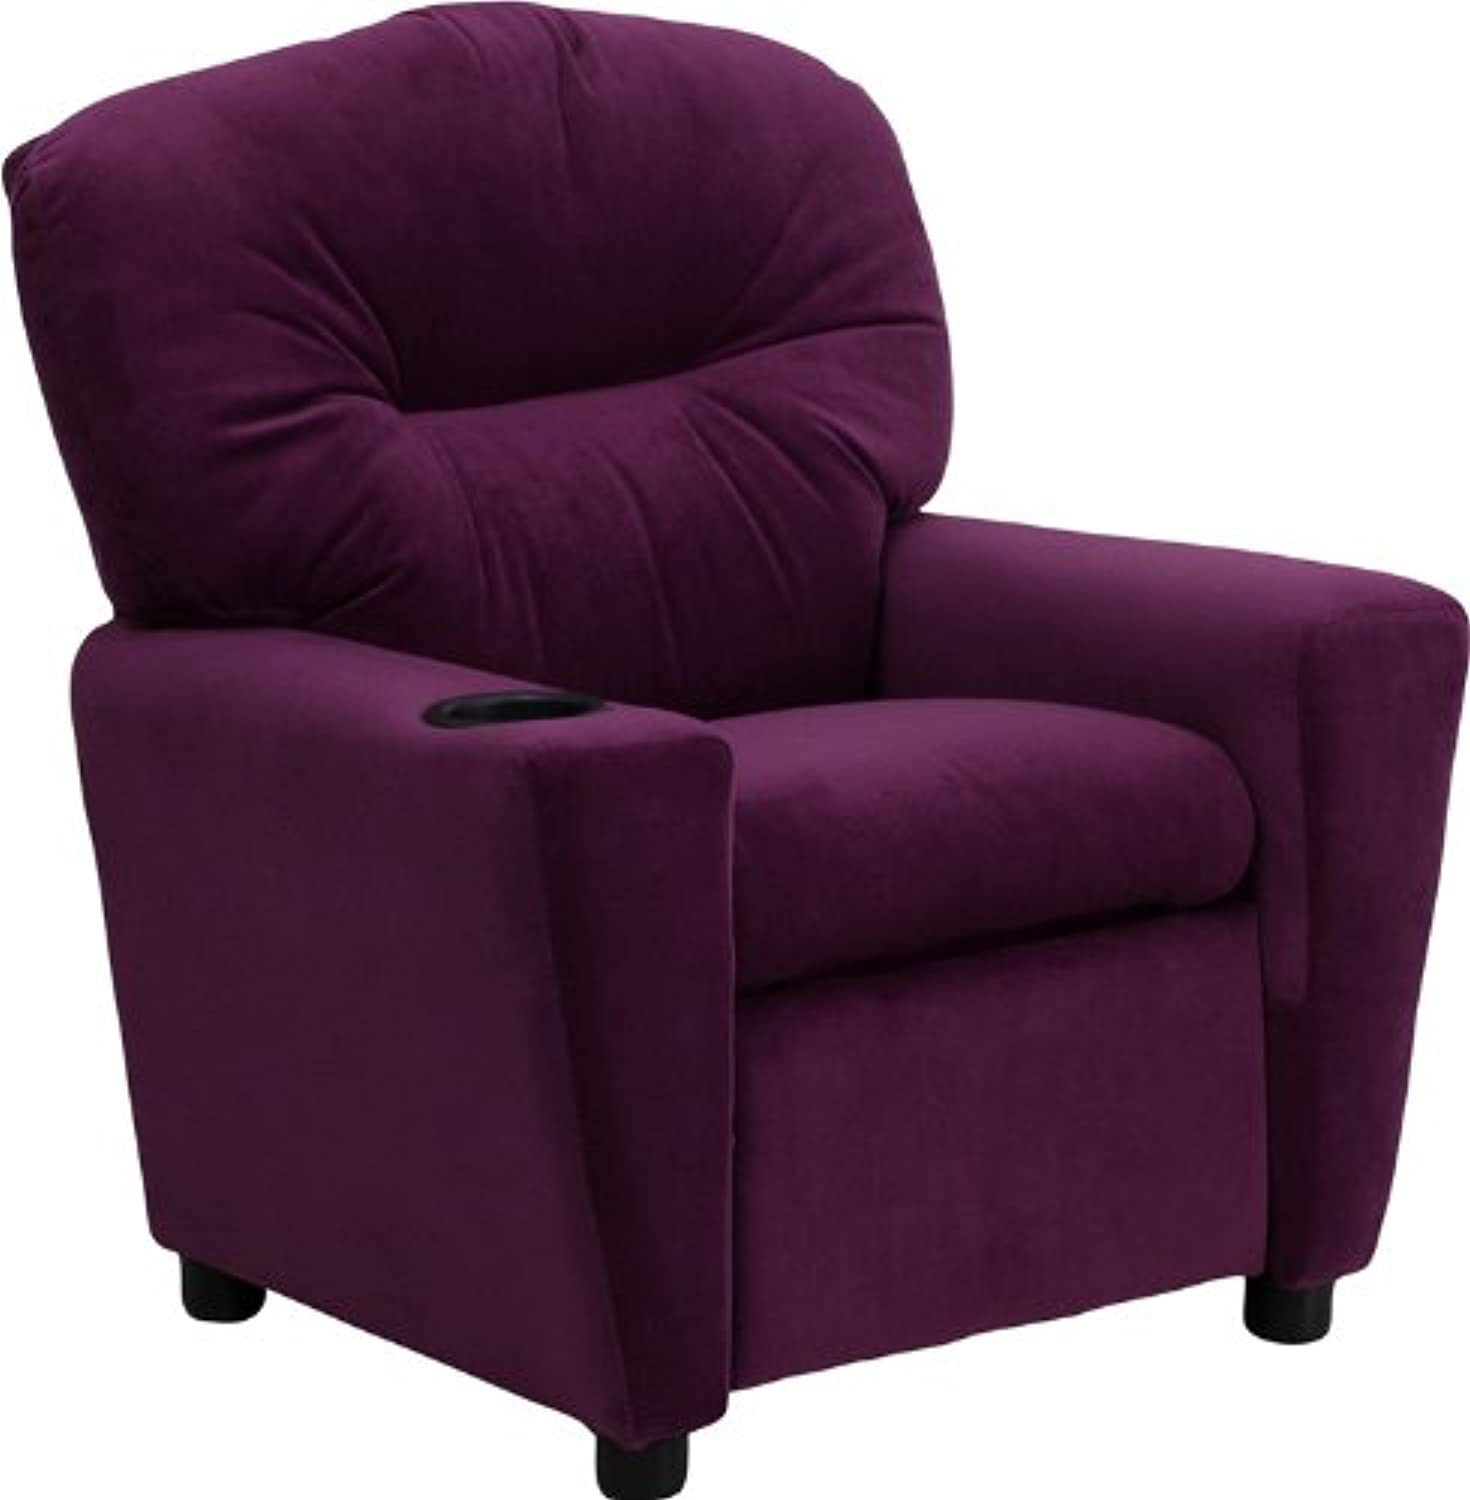 Flash Furniture BT-7950-KID-MIC-PUR-GG Contemporary Purple Microfiber Kids Recliner with Cup Holder